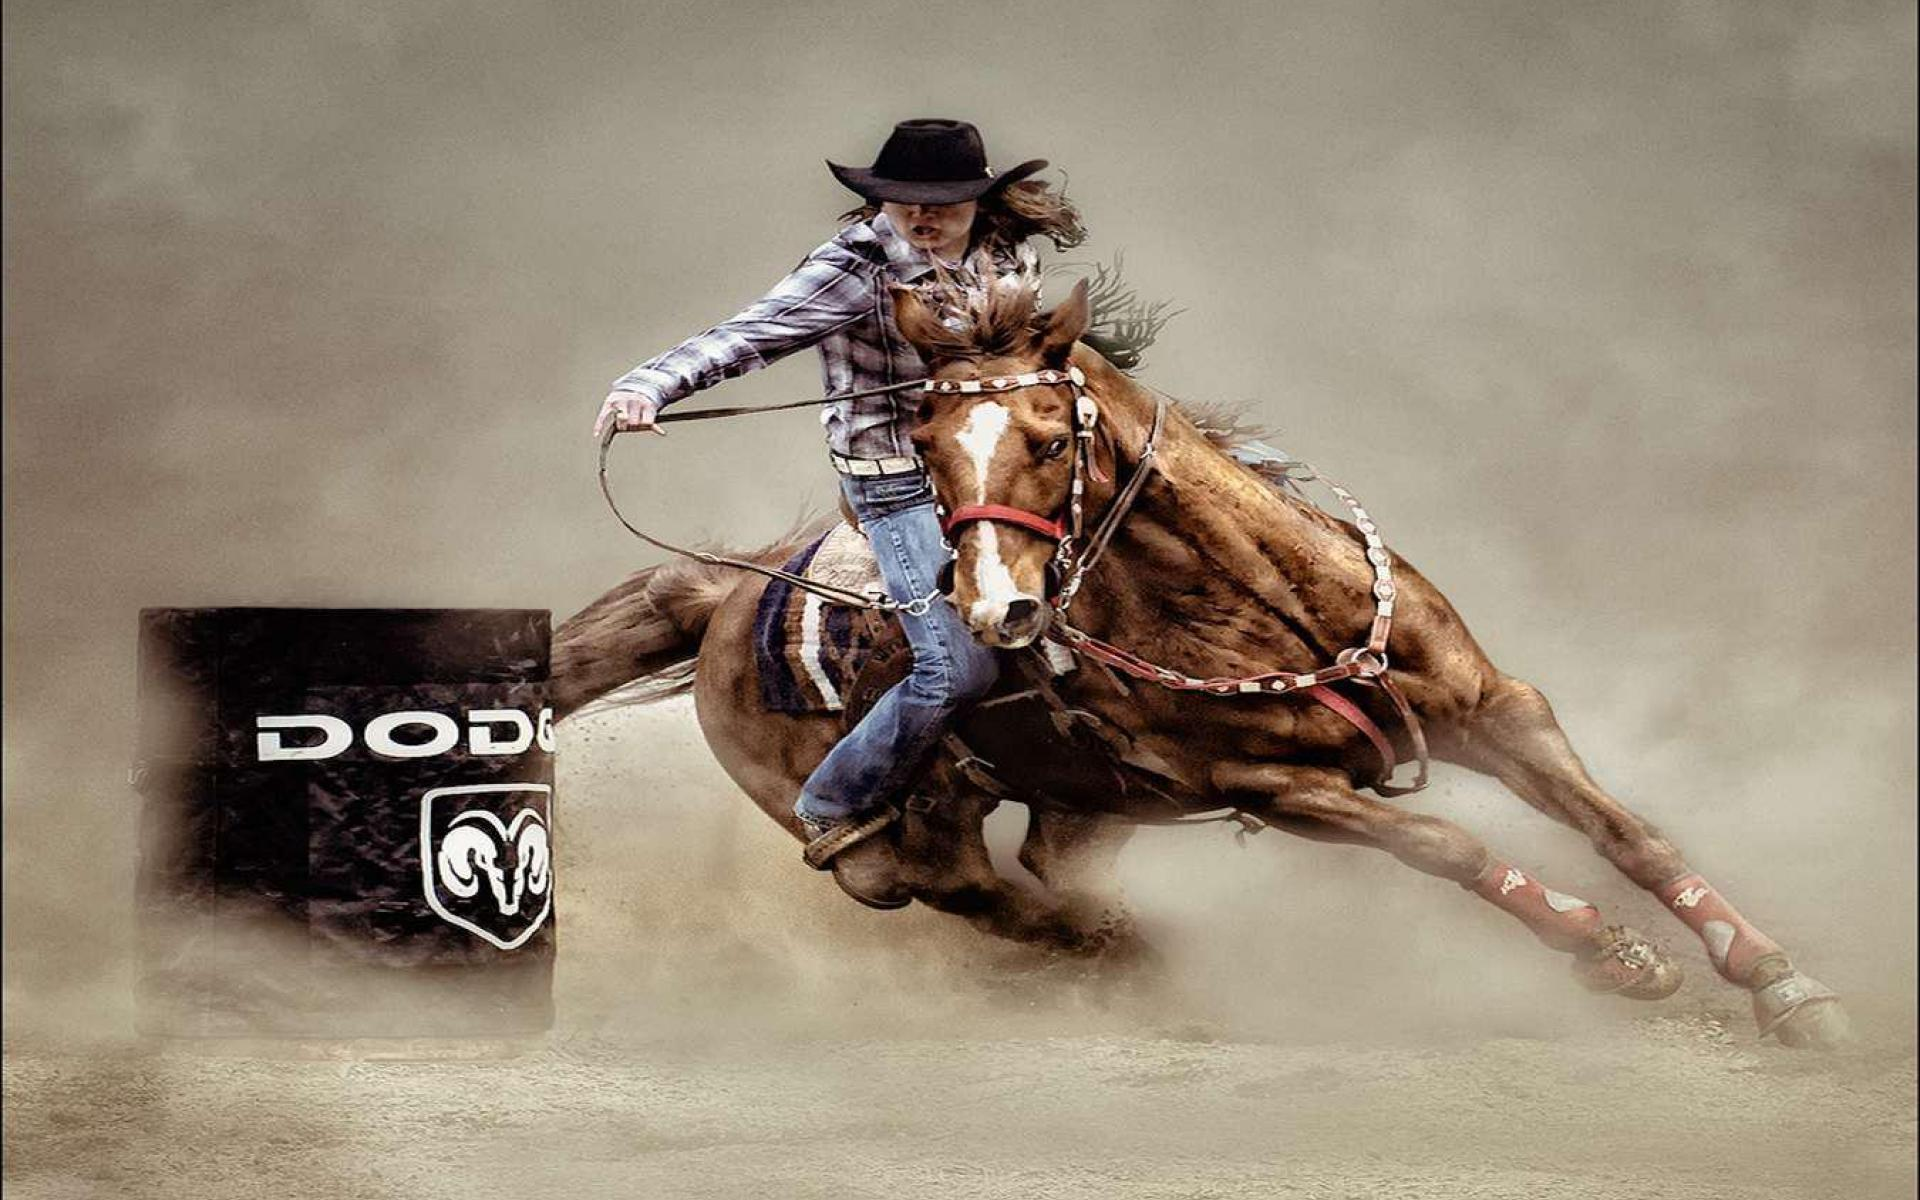 1920x1200 - Rodeo Wallpapers 28